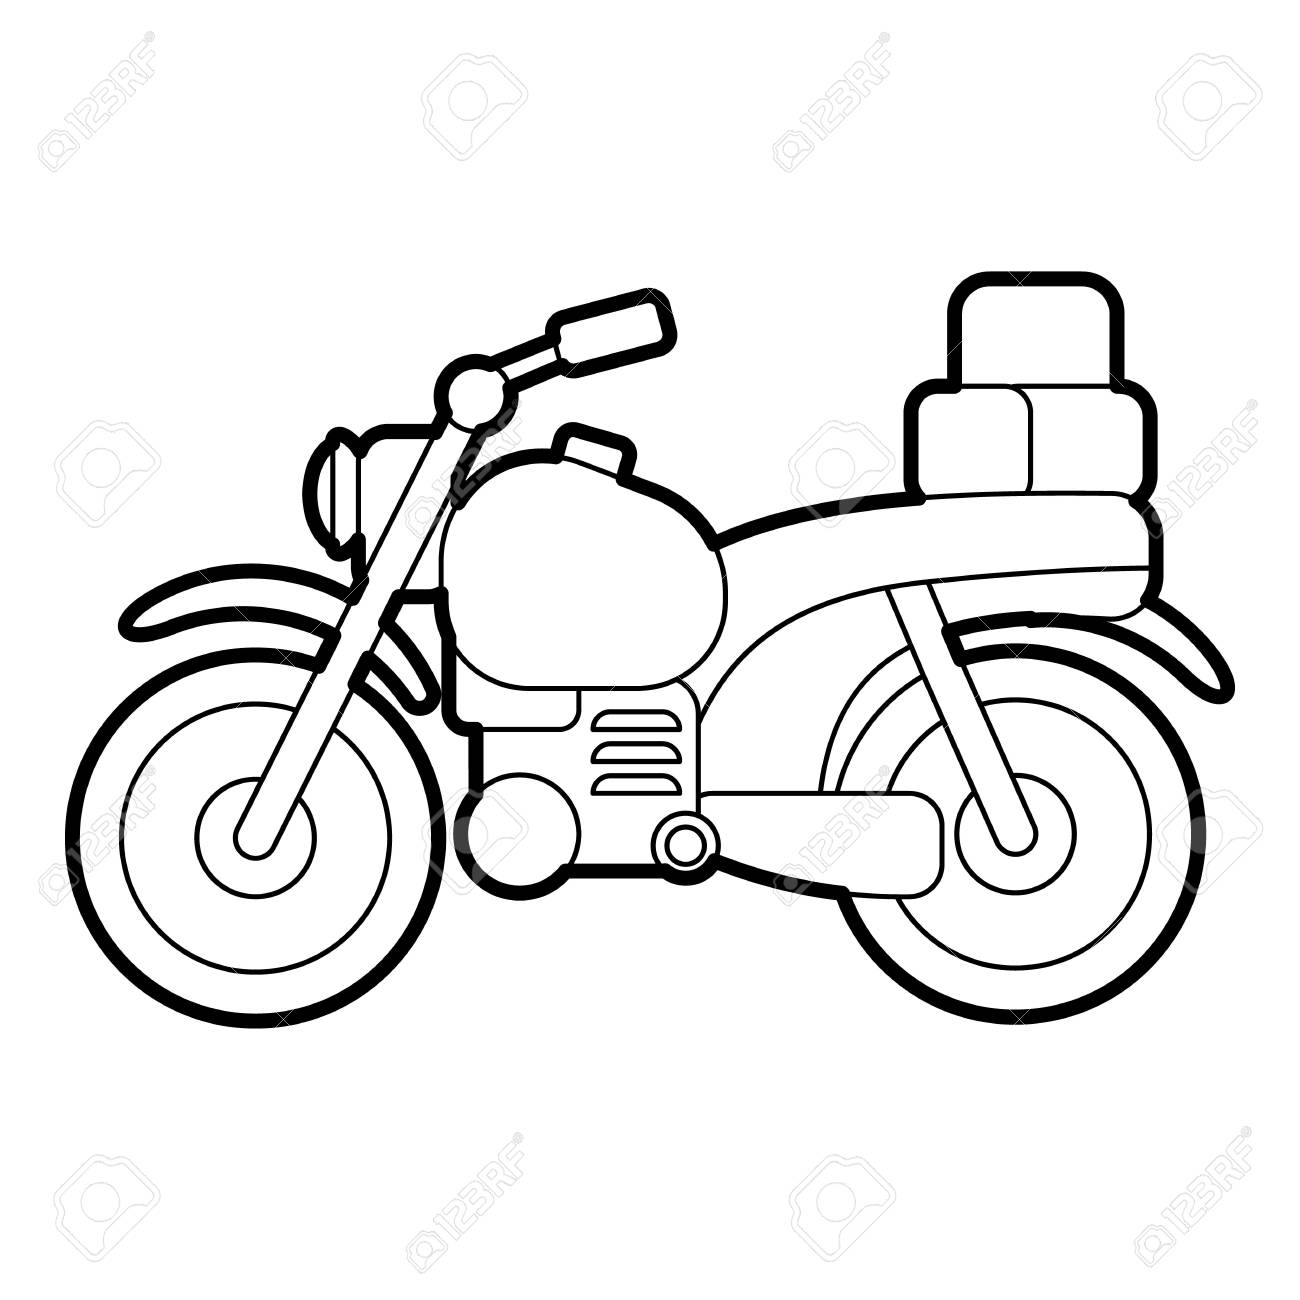 Motorcycle Icon Outline Illustration Of Motorcycle Vector Icon